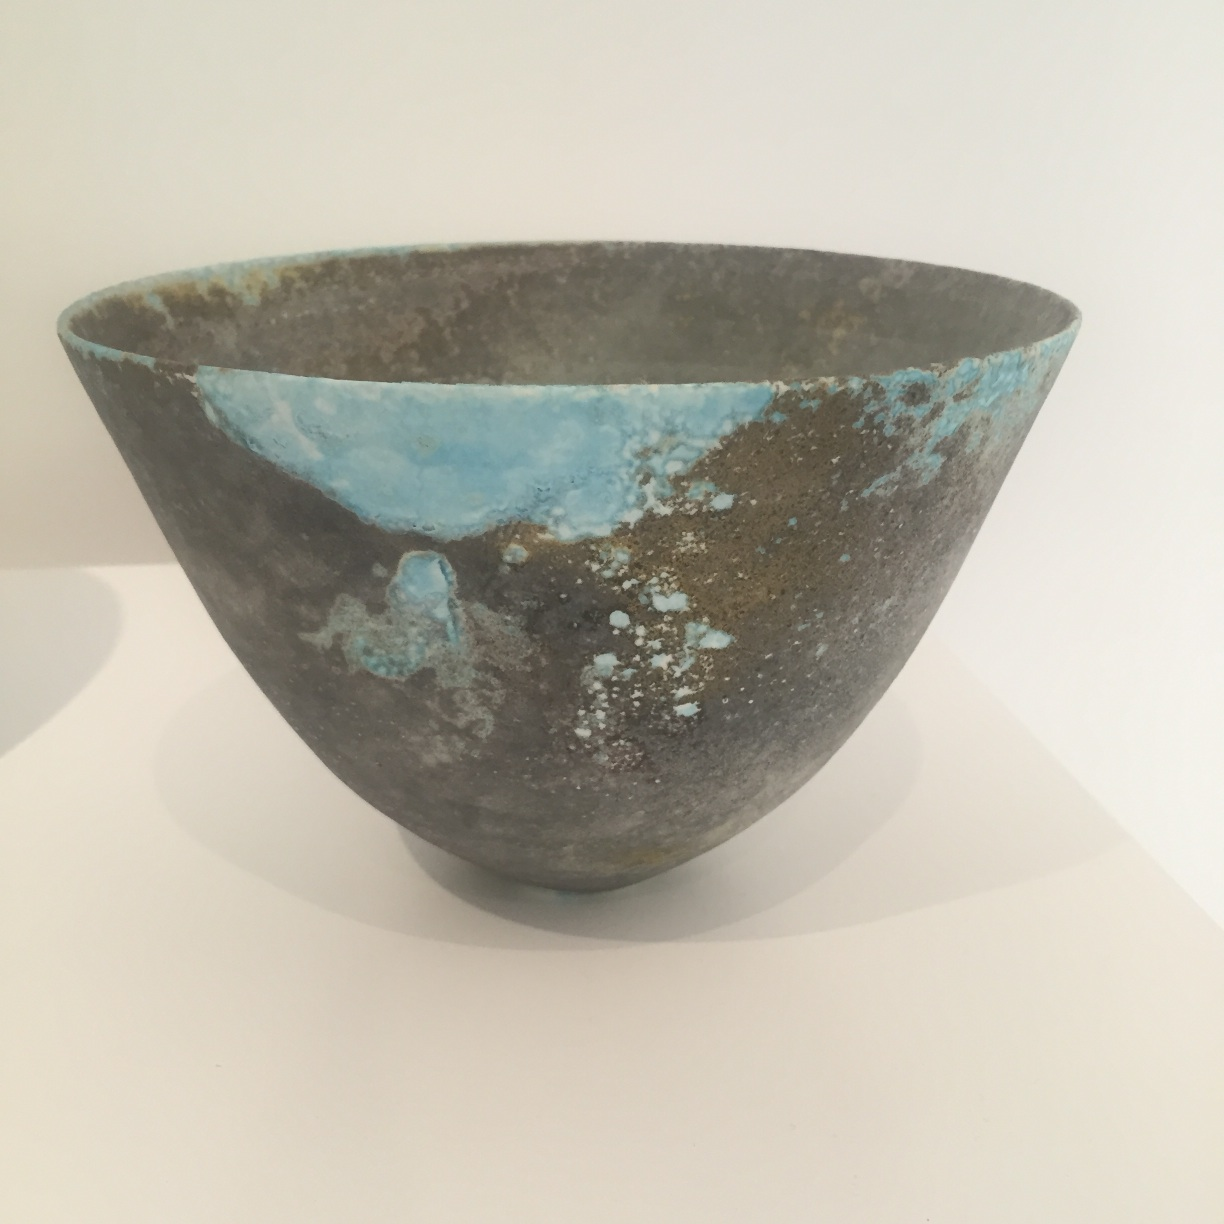 Jack Doherty, Smoky Grey & Blue Conical Form, soda fired porcelain, 16 x 21.5cm EUR 286 SOLD